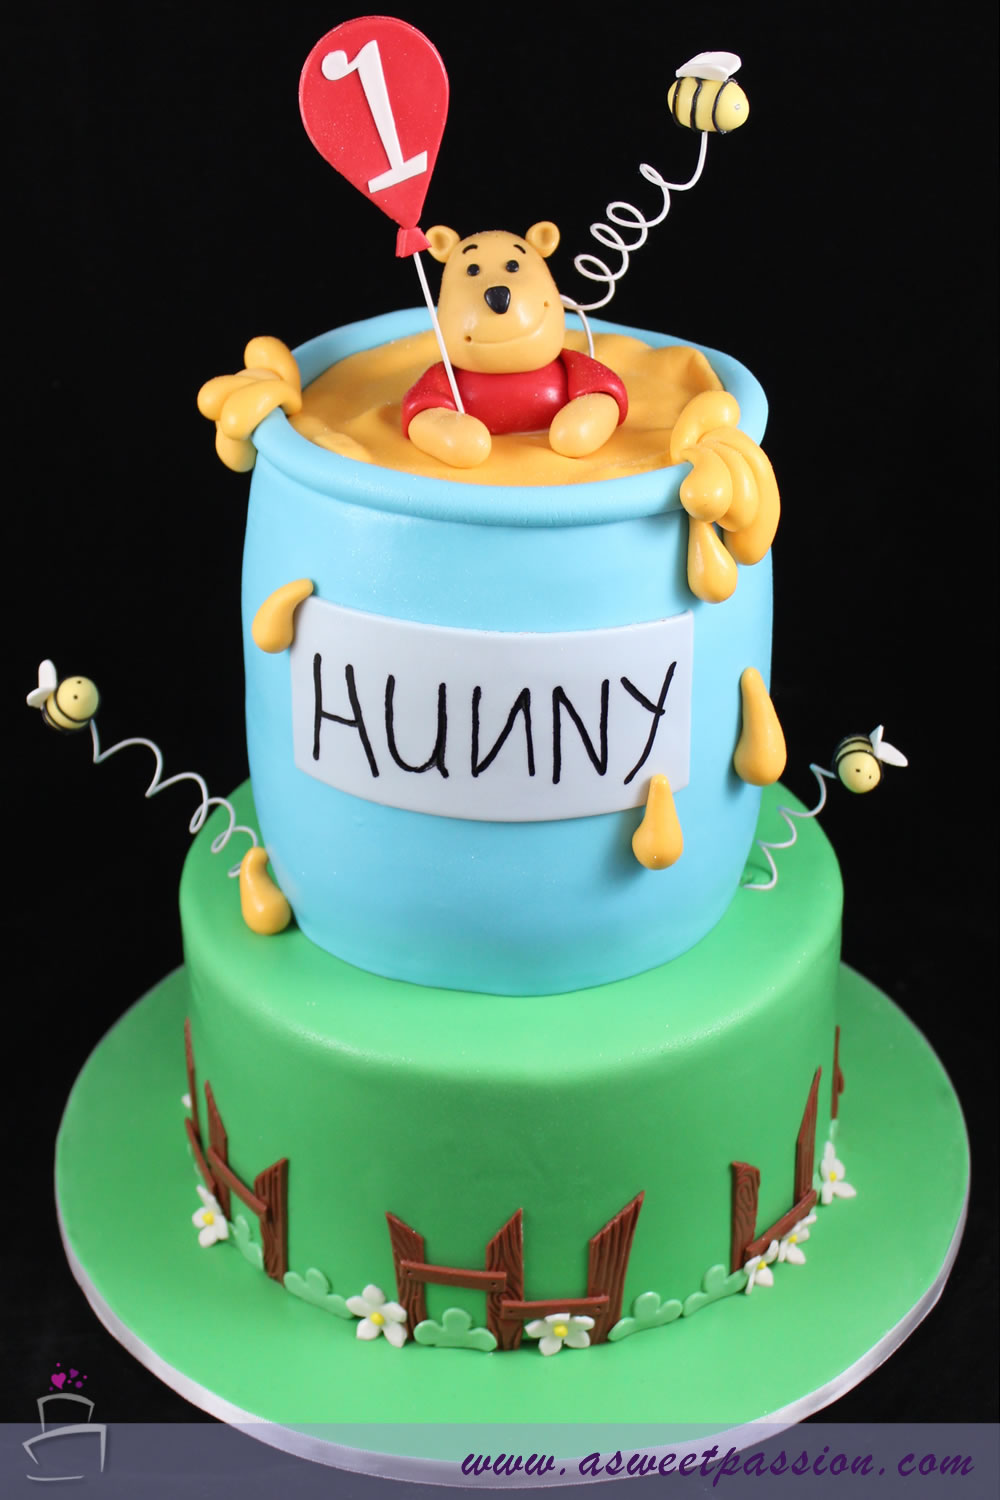 Peachy Winnie The Pooh Birthday Cake Sweet Passion Cakery Funny Birthday Cards Online Alyptdamsfinfo